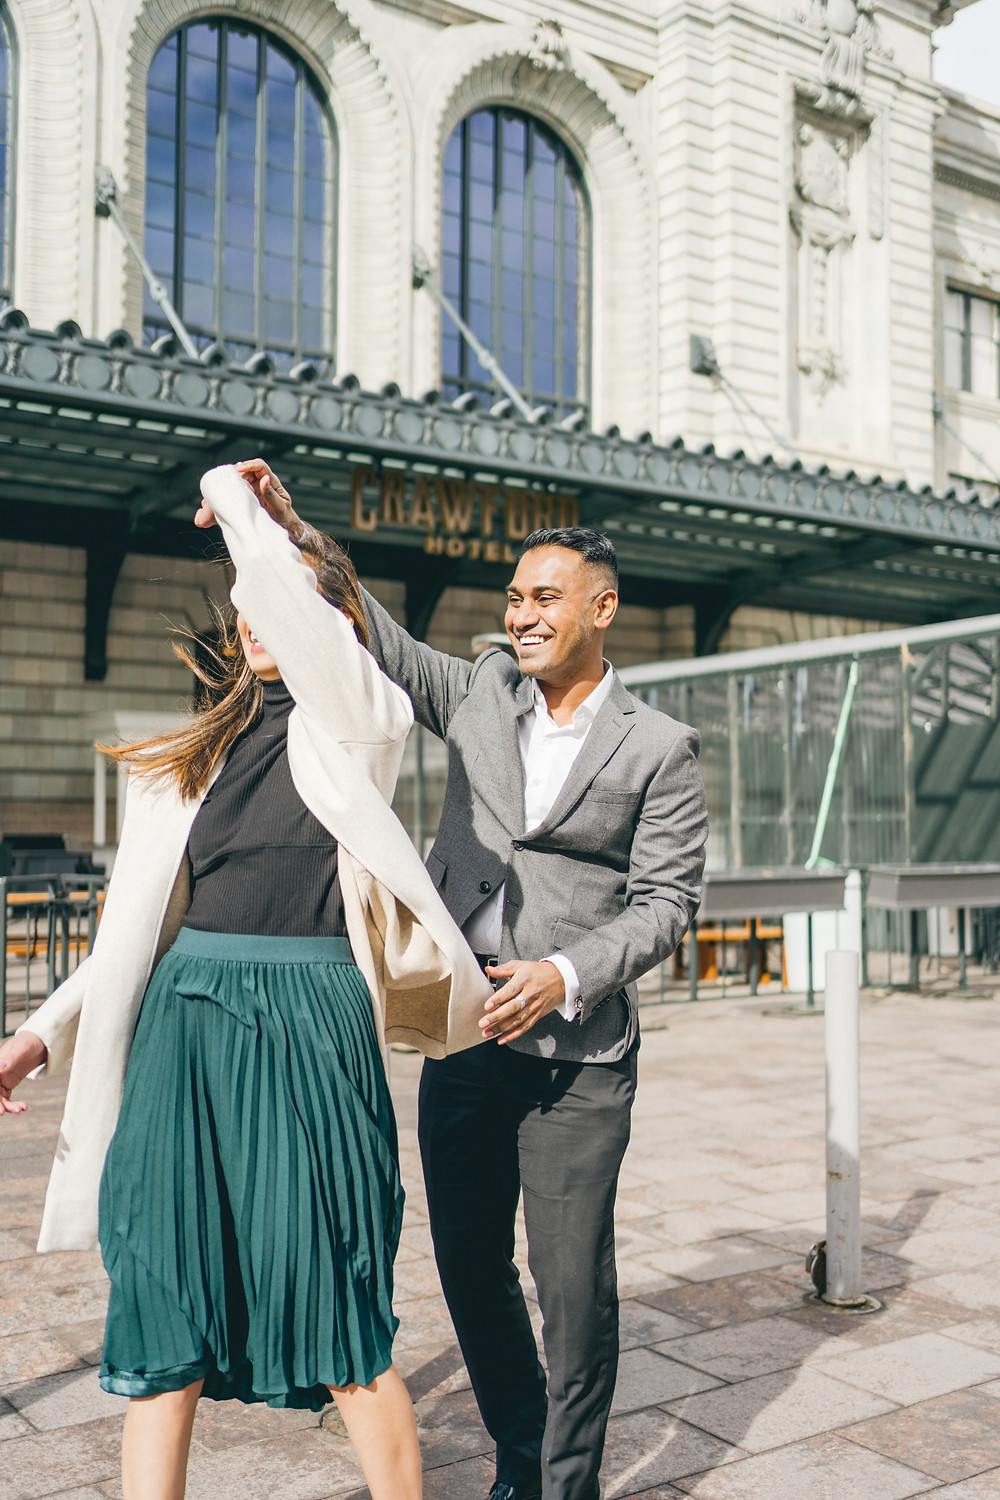 Denver Union Station couples shoot